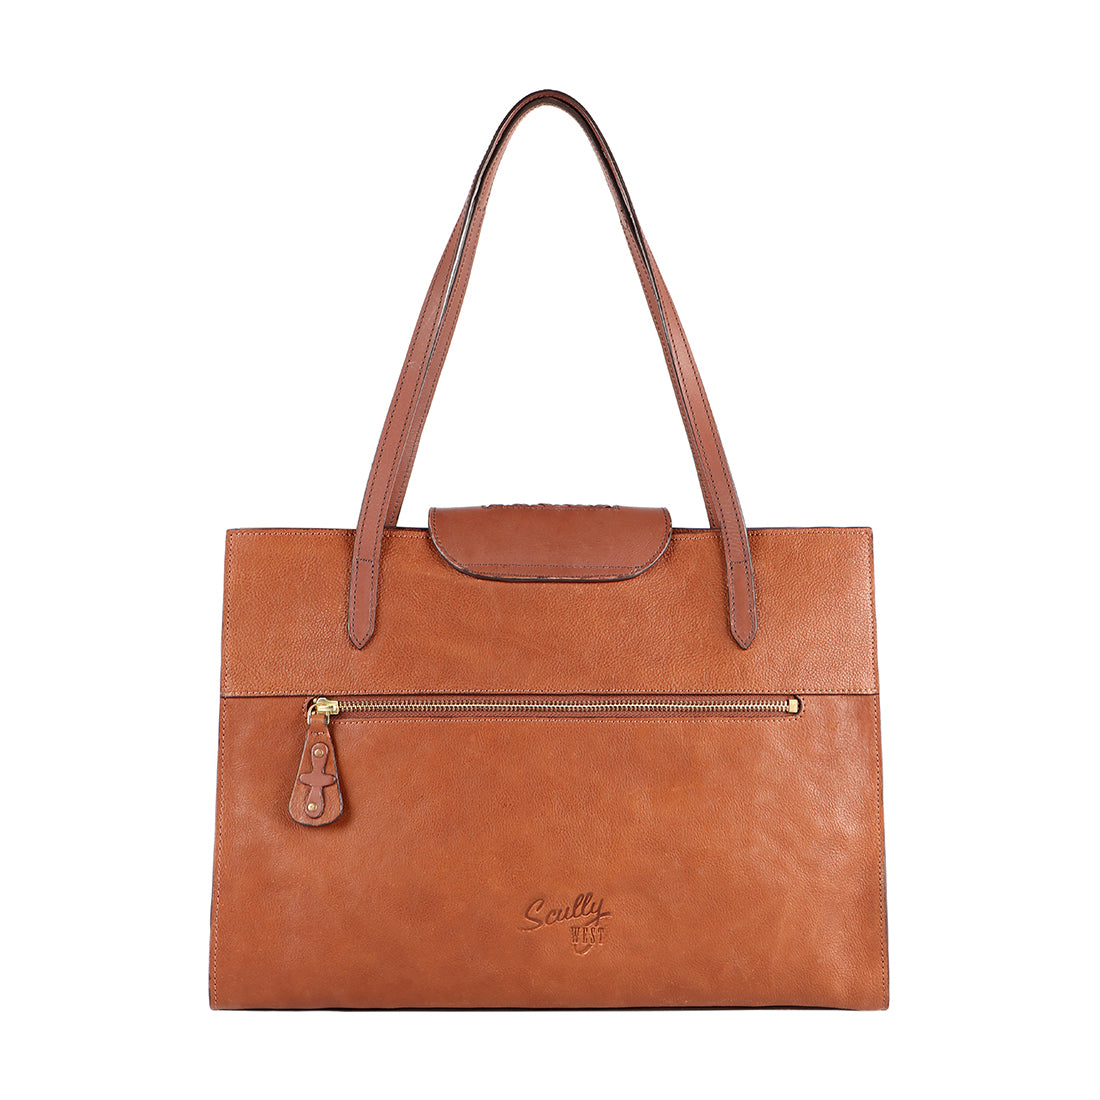 Scully West Leather Handbag